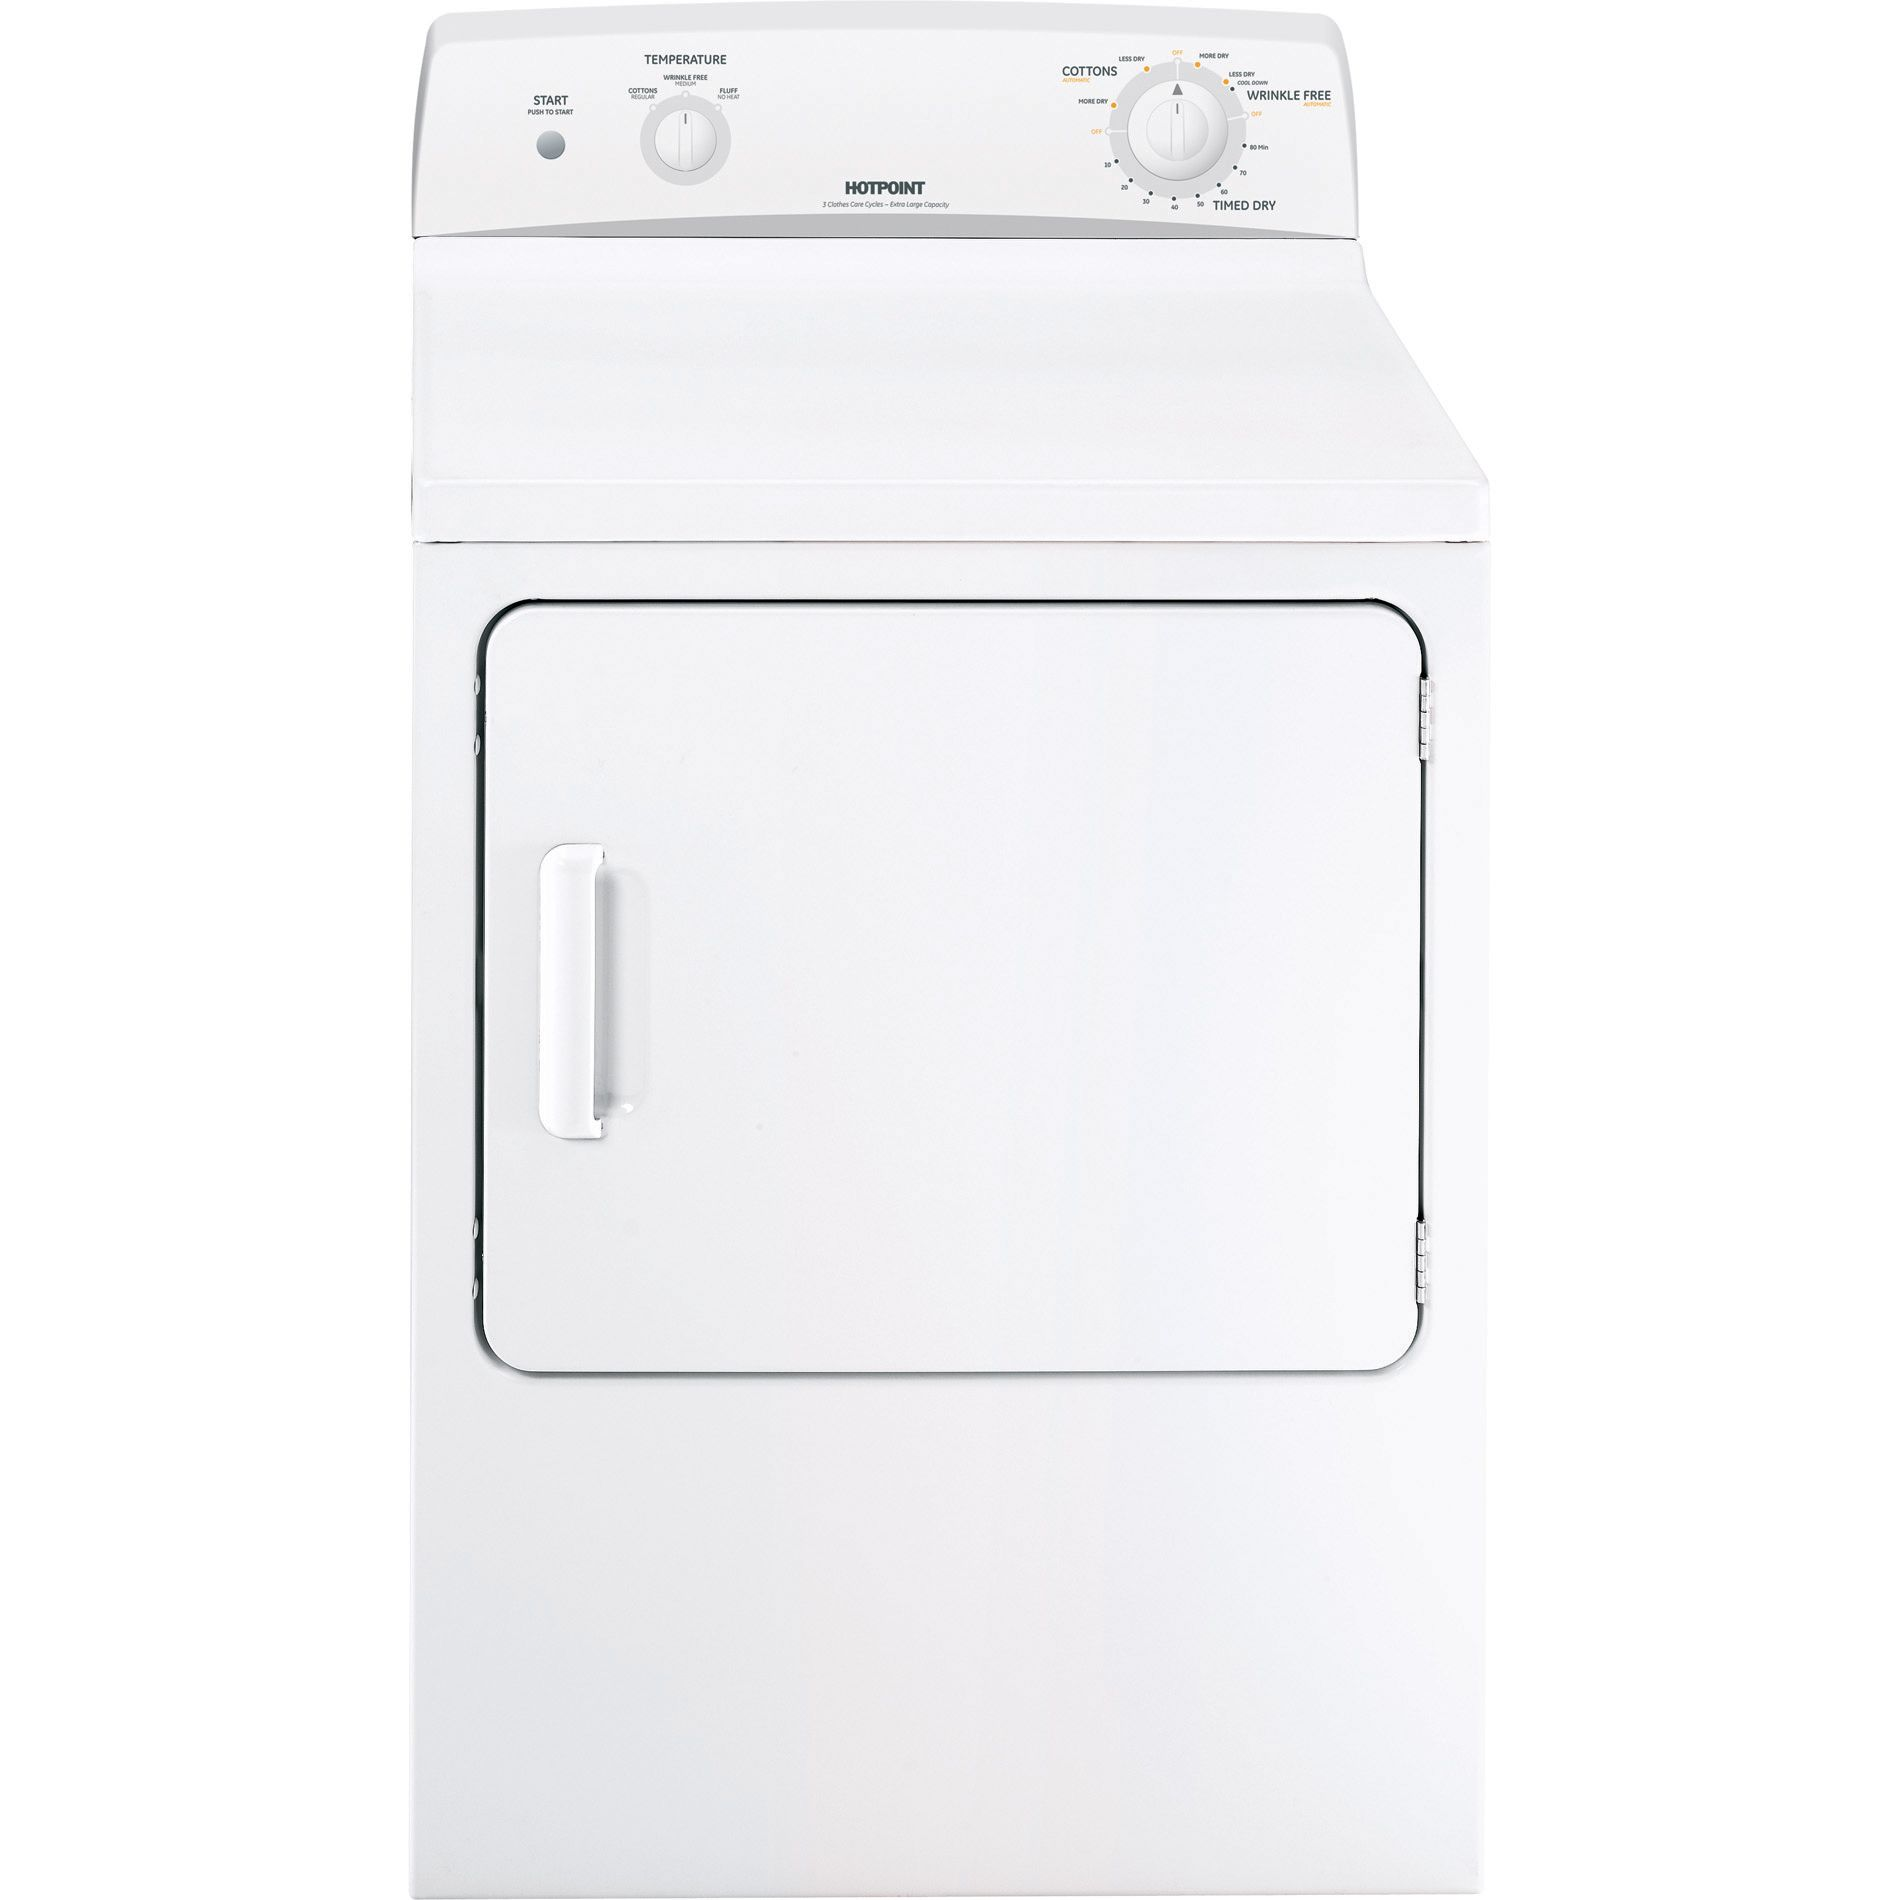 Hotpoint HTDX100EMWW 6.0 cu. ft. Flat-Back Electric Dryer - White